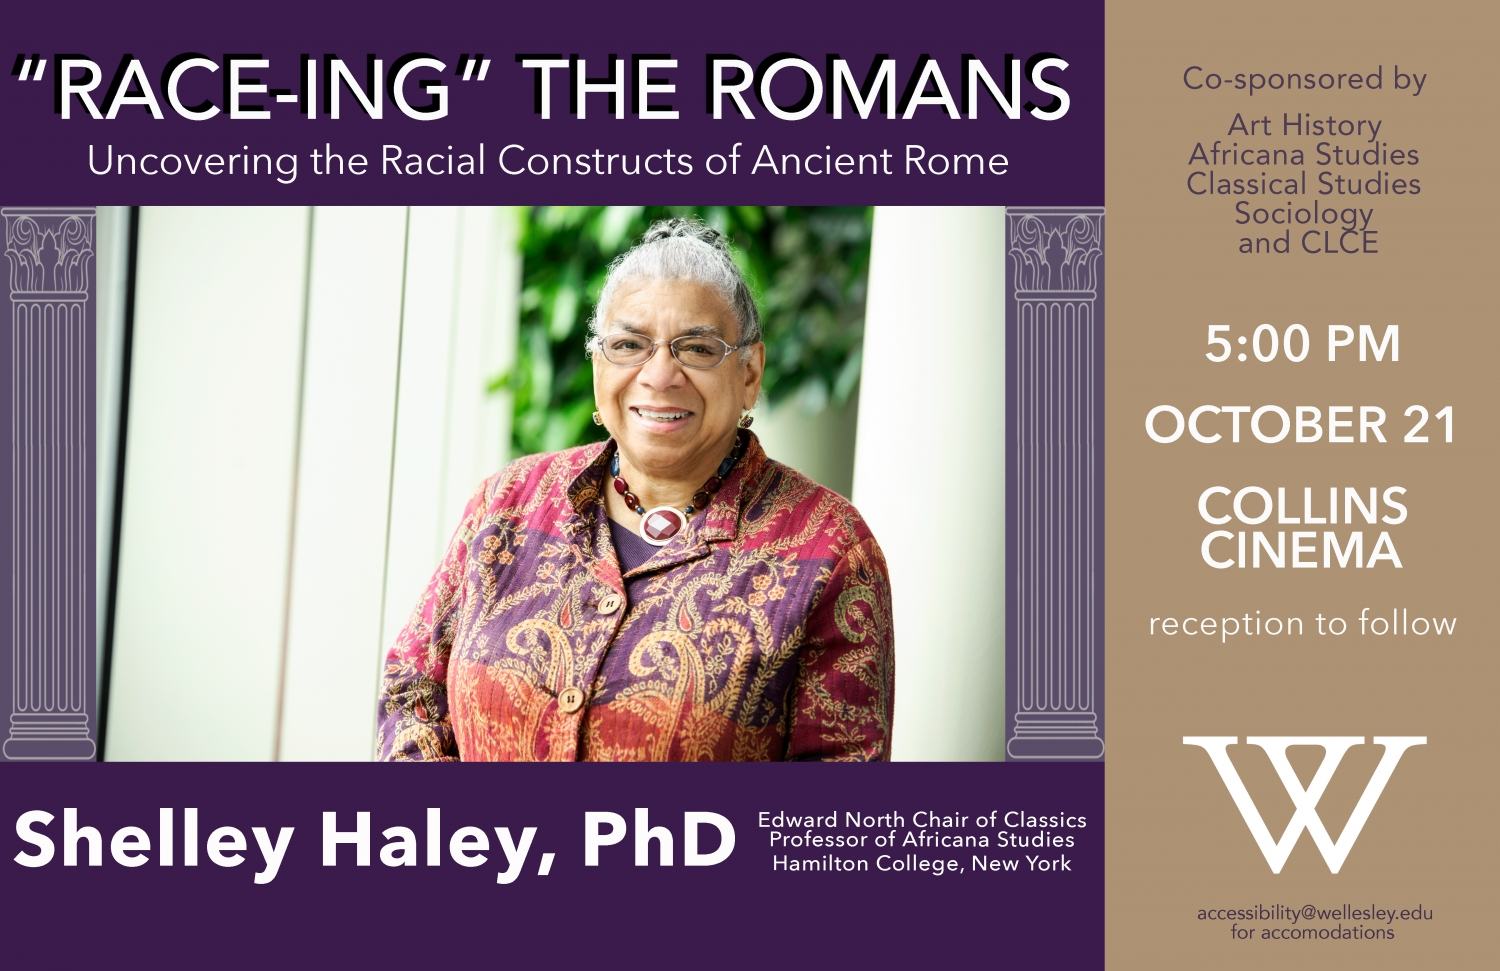 poster for Race-ing the Romans lecture featuring photo of Shelley Haley standing outside